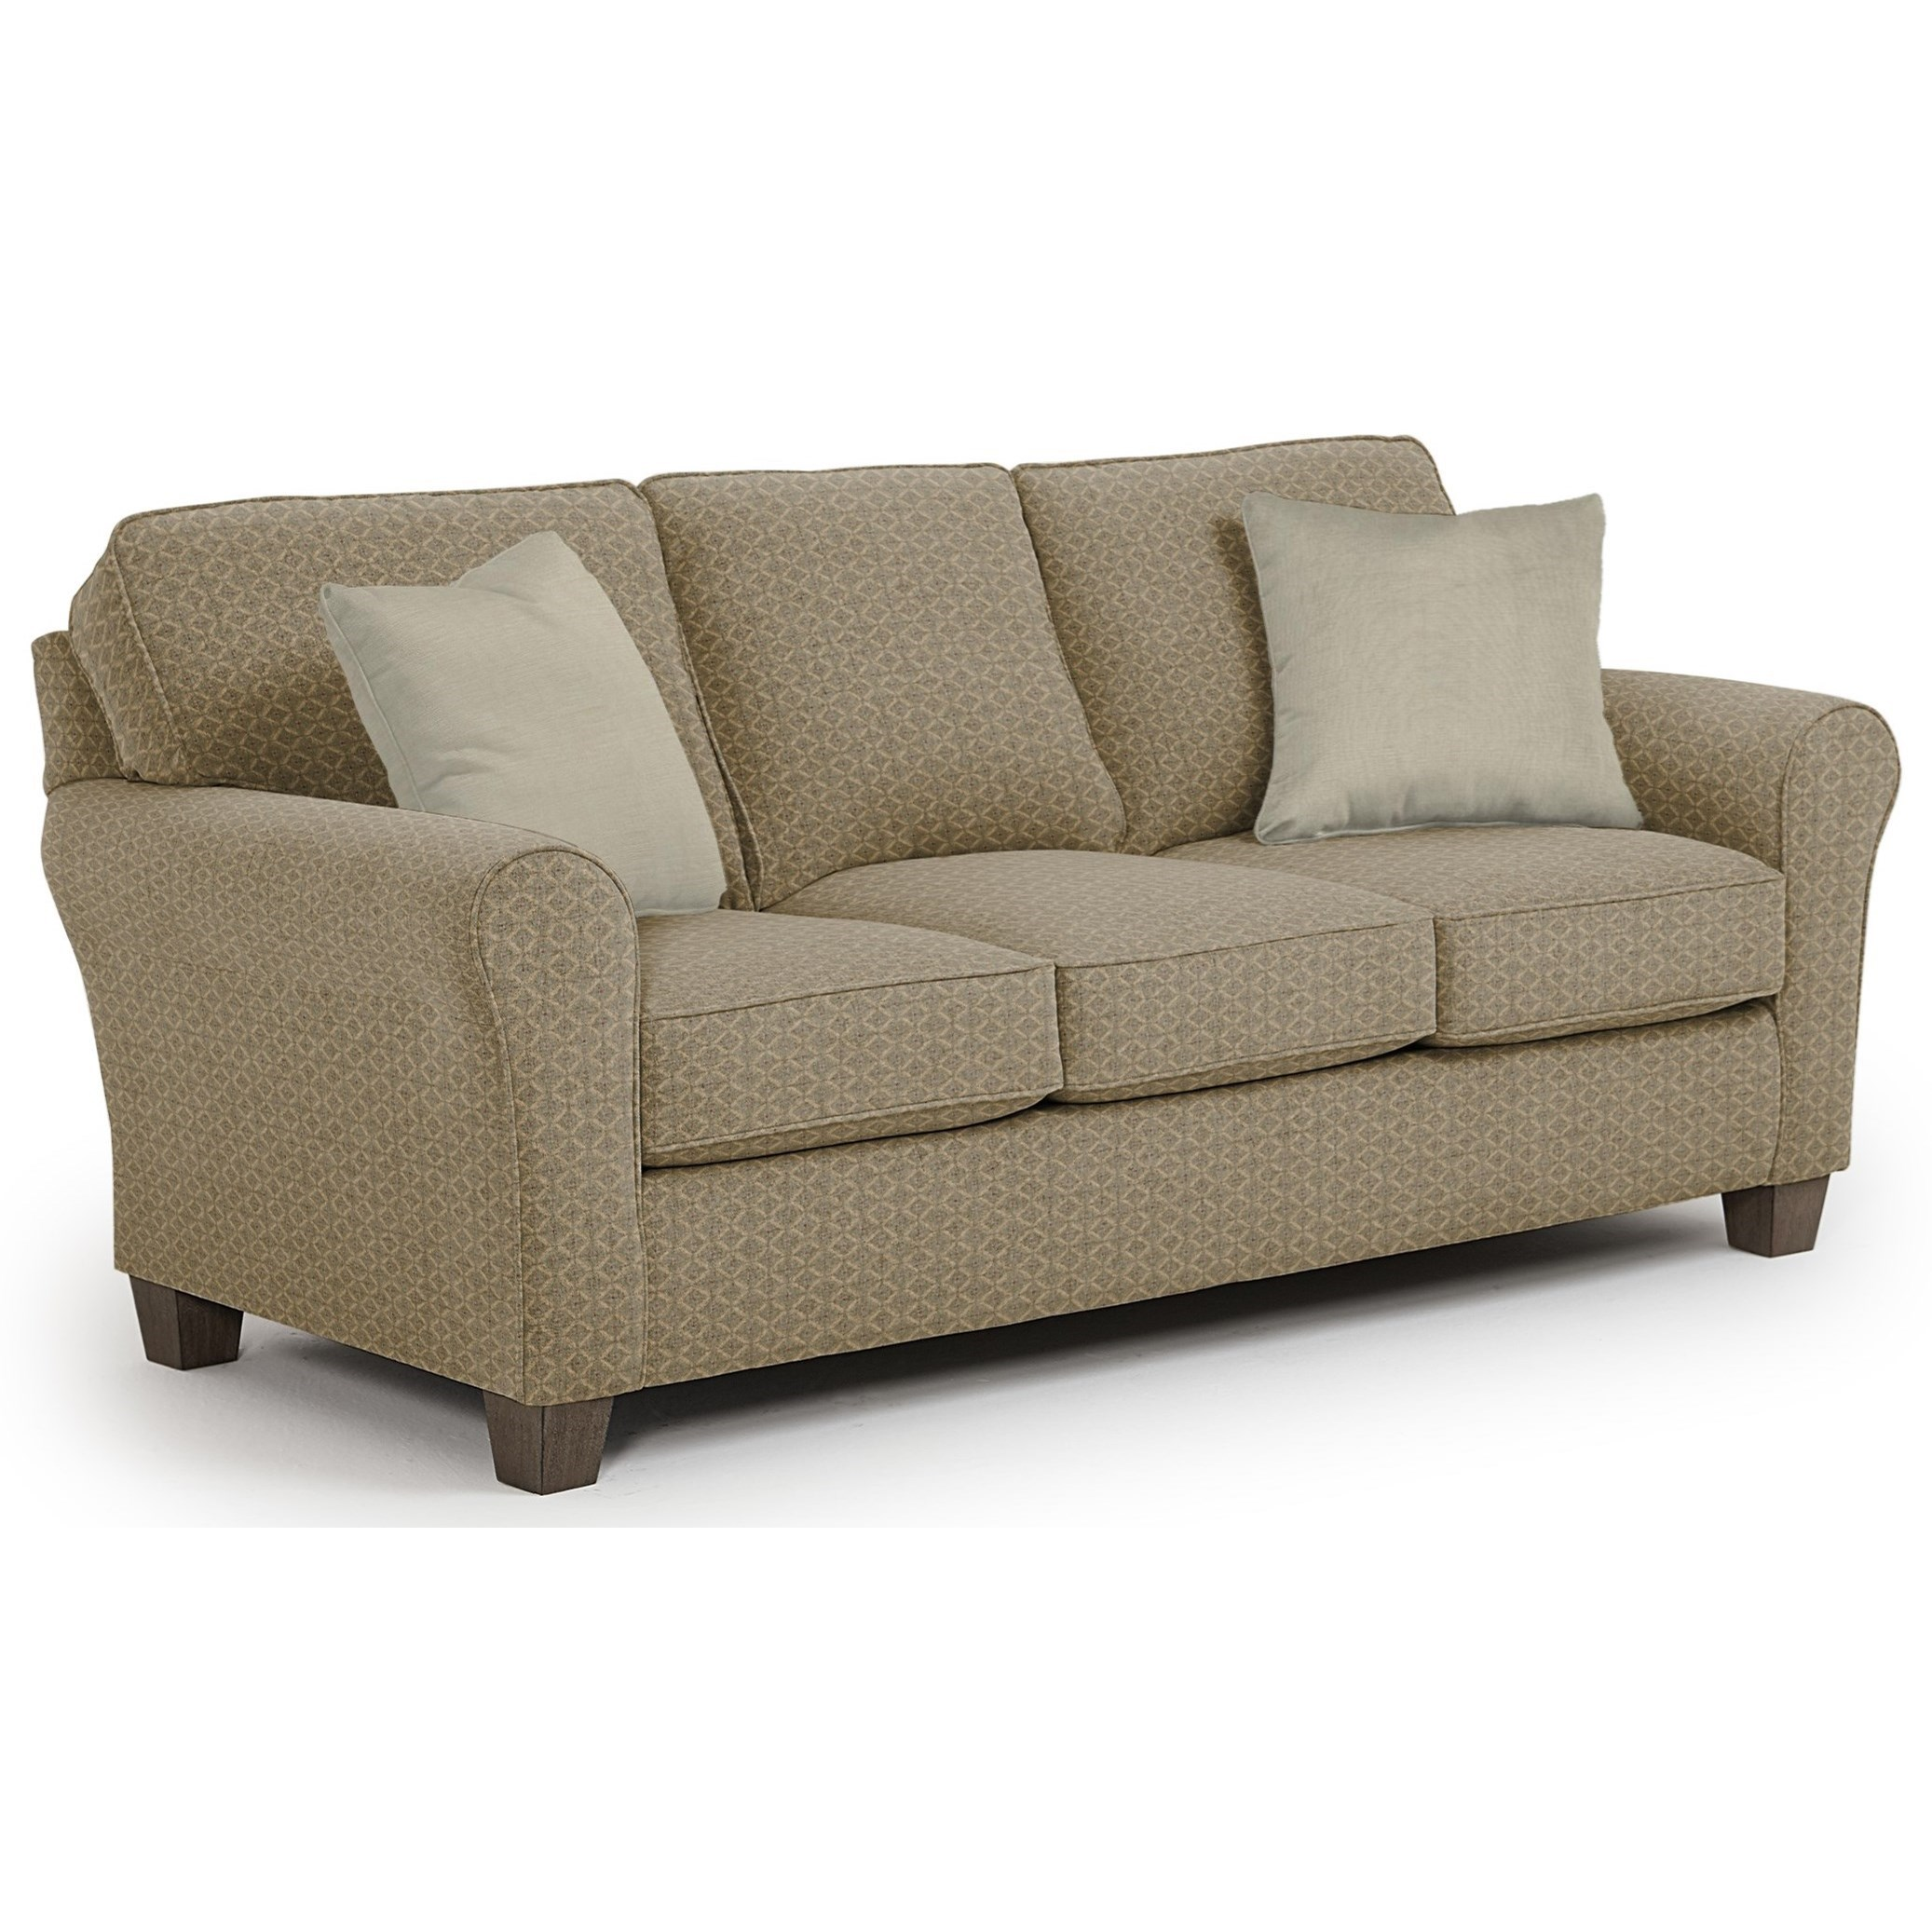 Best Home Furnishings Annabel  <b>Custom</b> 3 Over 3 Sofa - Item Number: 95361869-18021